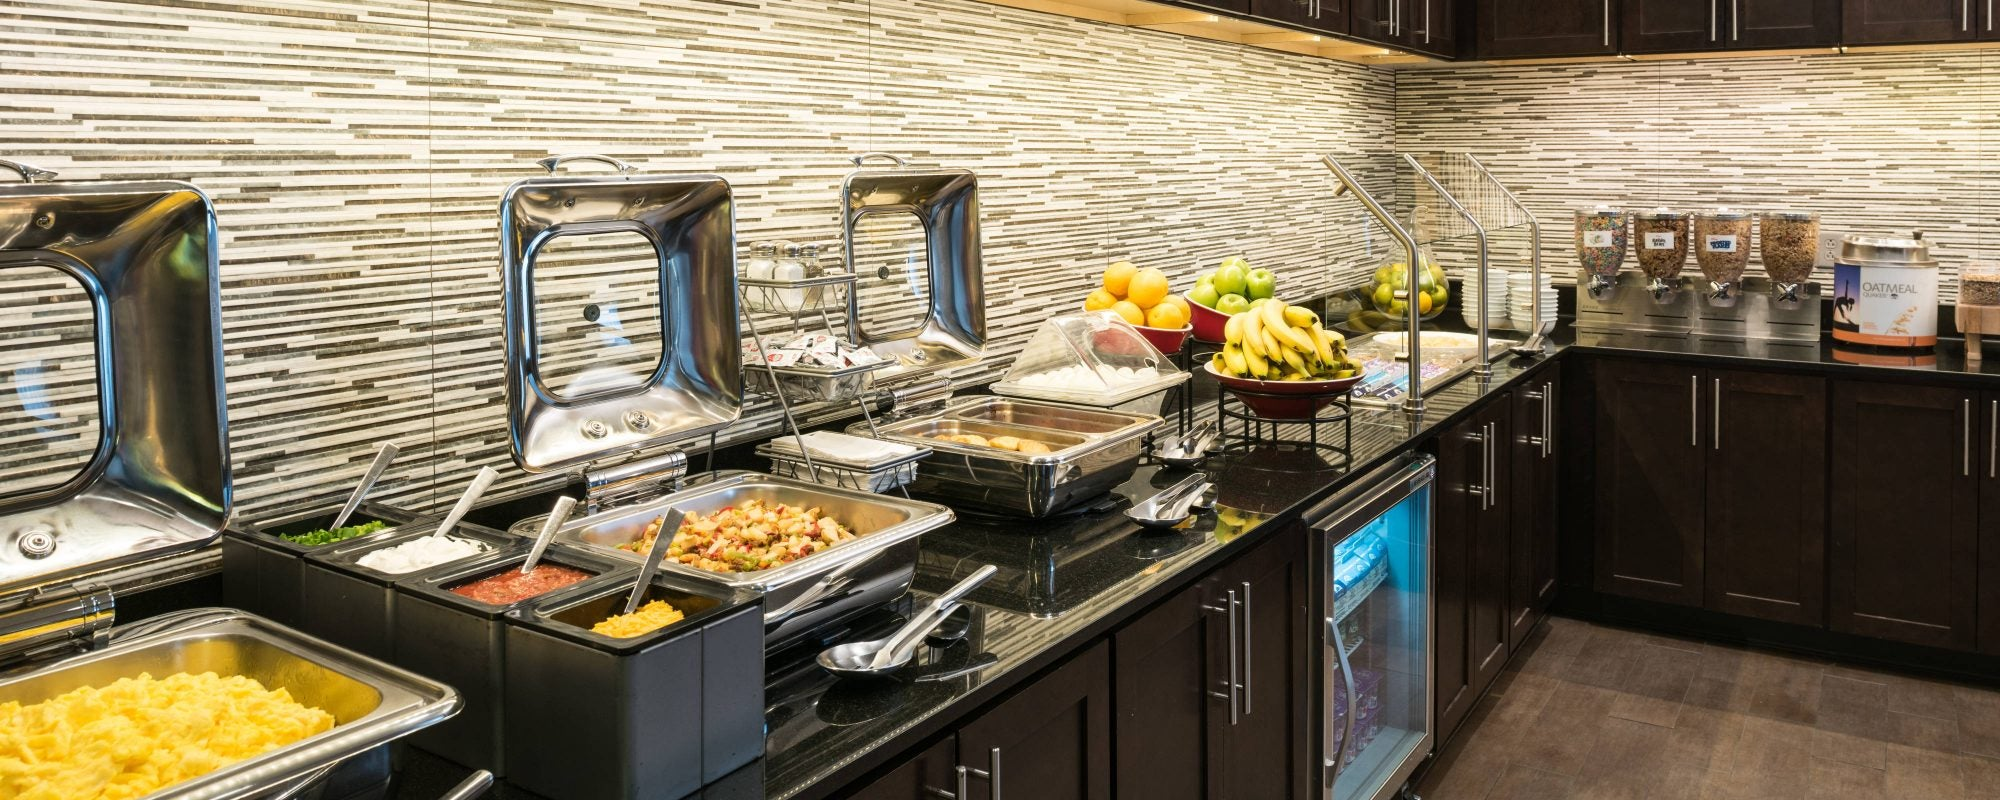 Residence Inn Offers An Exceptional Breakfast For All Guests. Many Selections of Food From Warm to Cold and Sweet to Salty